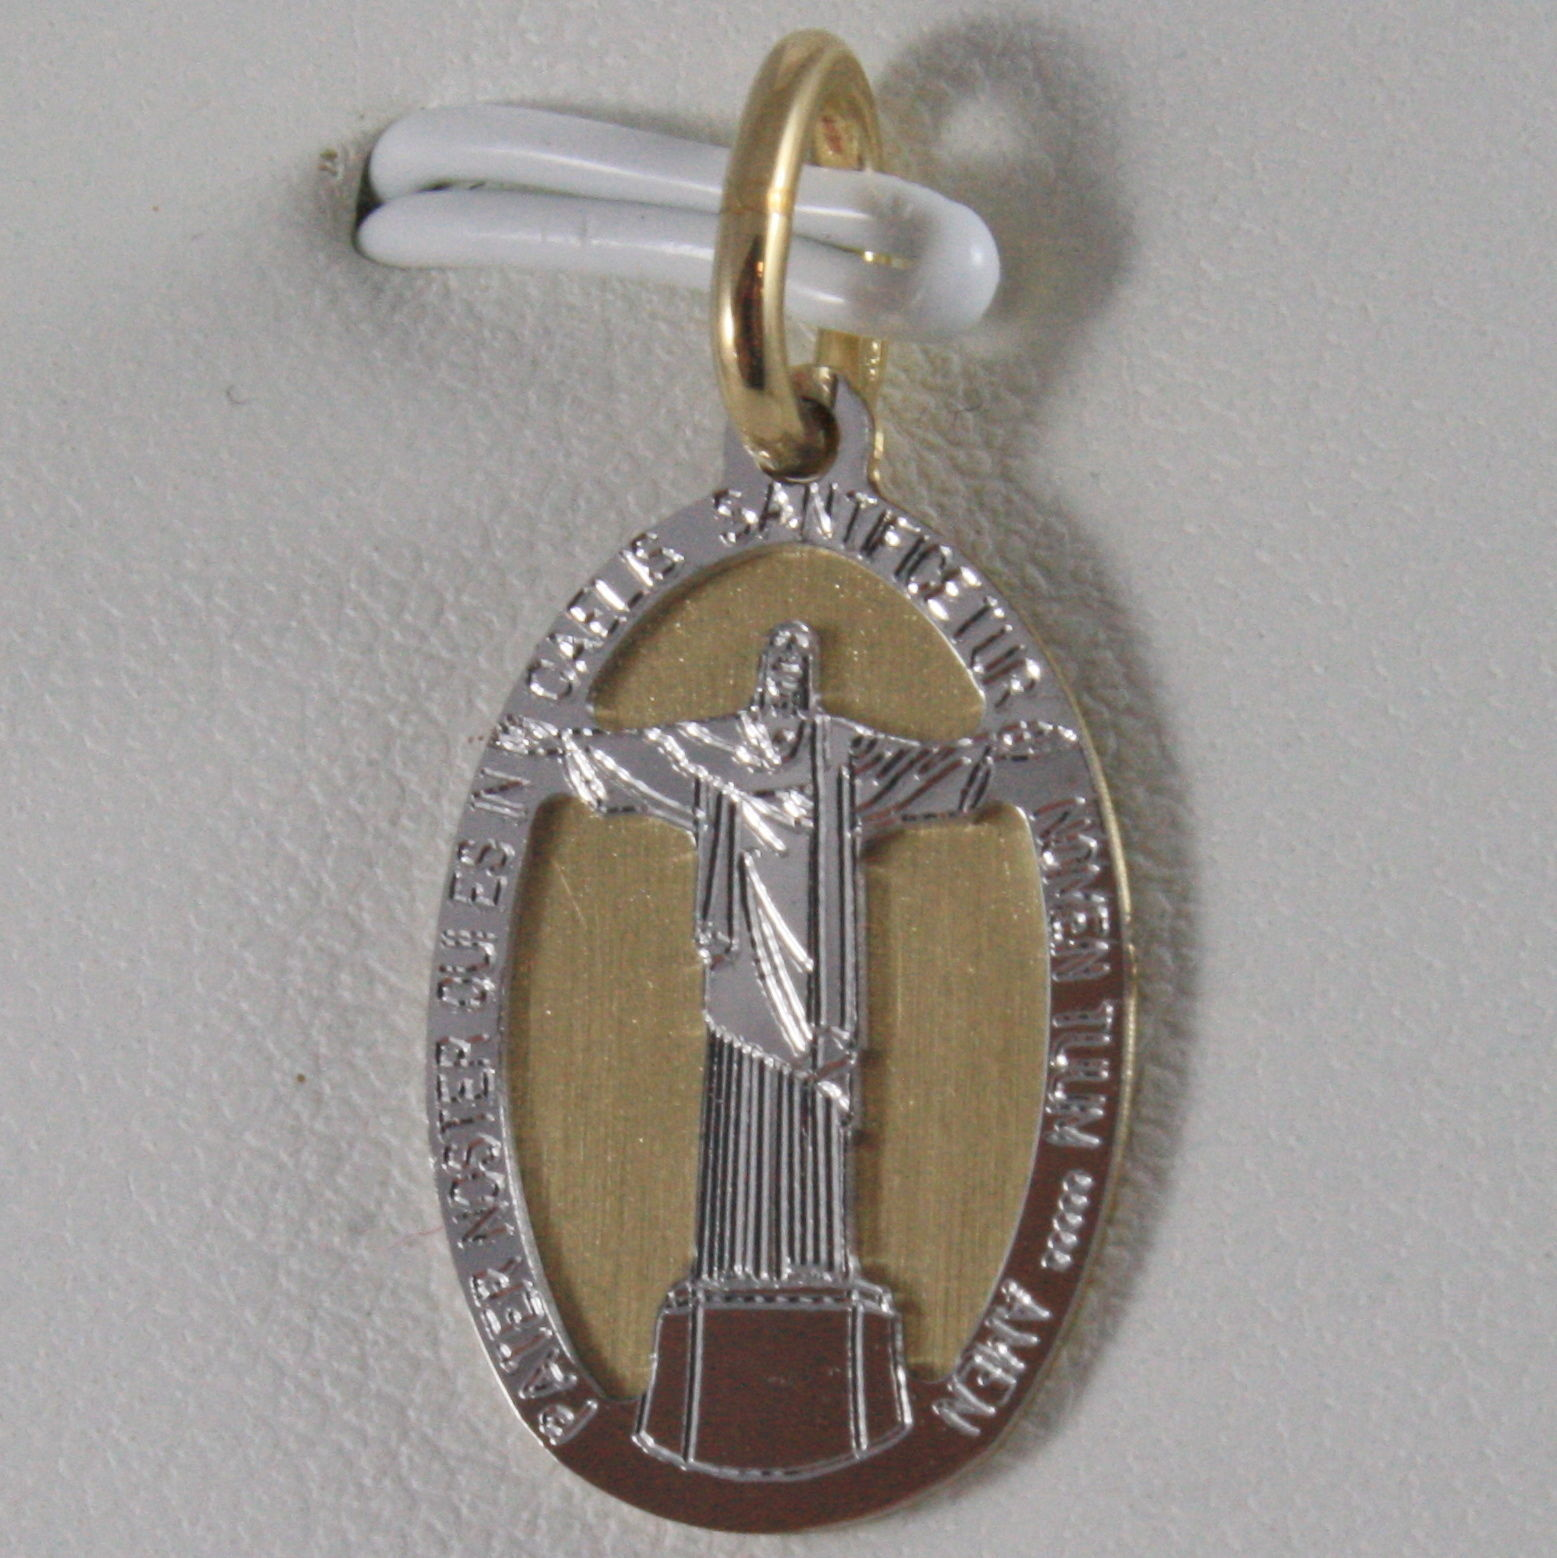 SOLID 18K WHITE YELLOW GOLD MEDAL CHRIST OF RIO REDEEMER REDENTOR, MADE IN ITALY